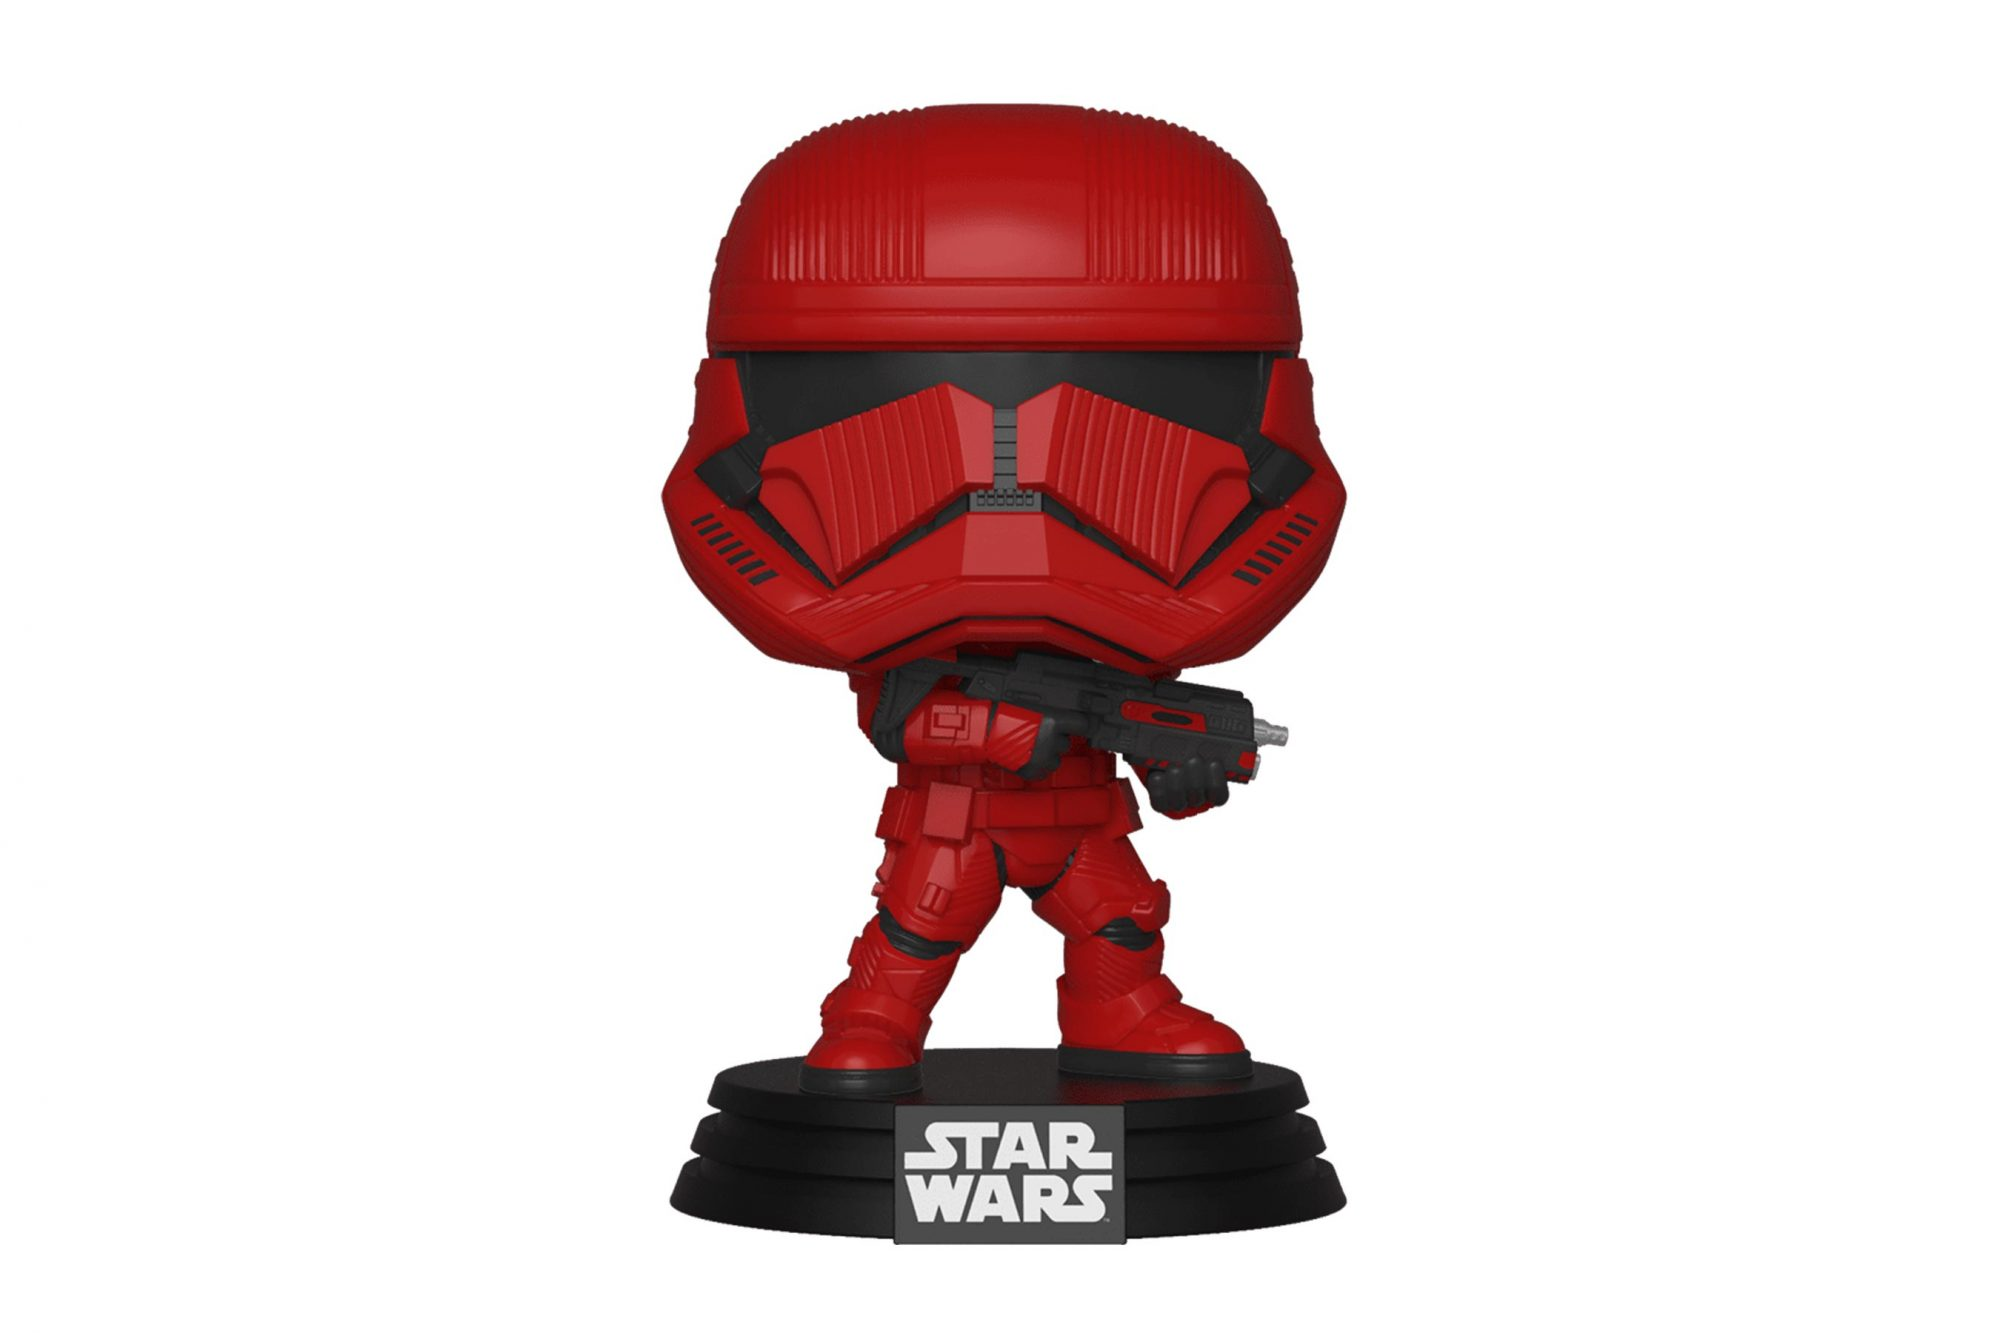 2019 SDCC Reveal: Star Wars Funko toy Red Sith Trooper